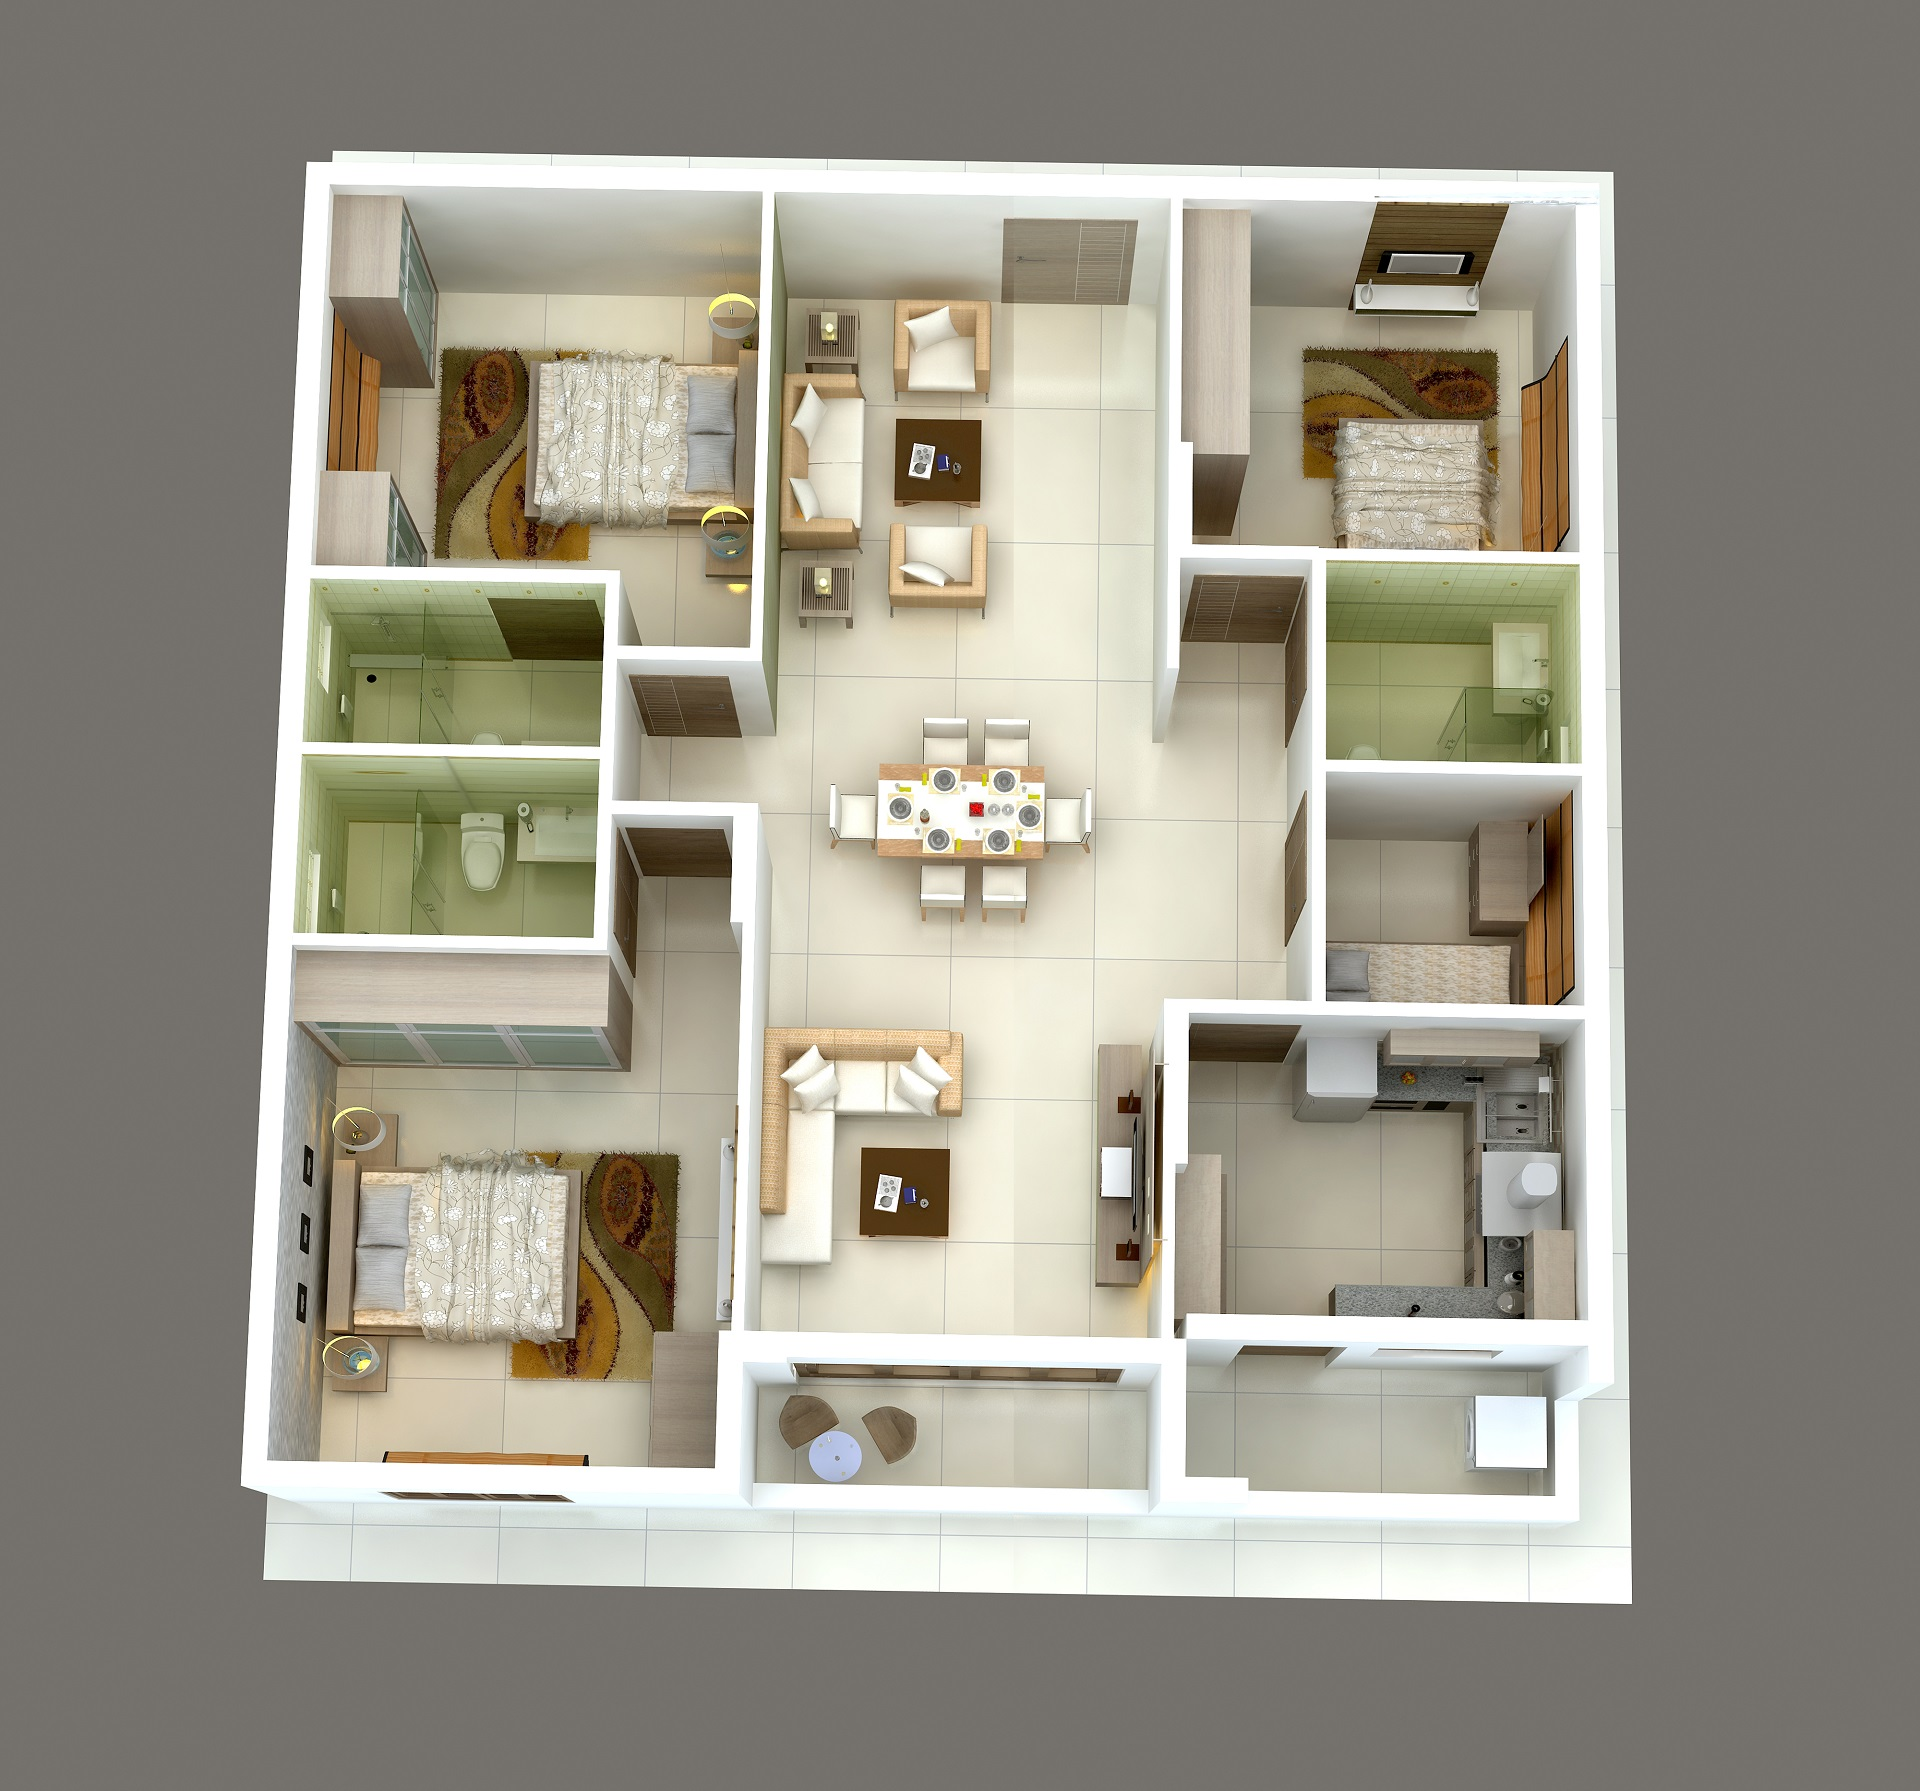 ar-concepts-emami-apartment-residential-north-five-bedroom-image-a